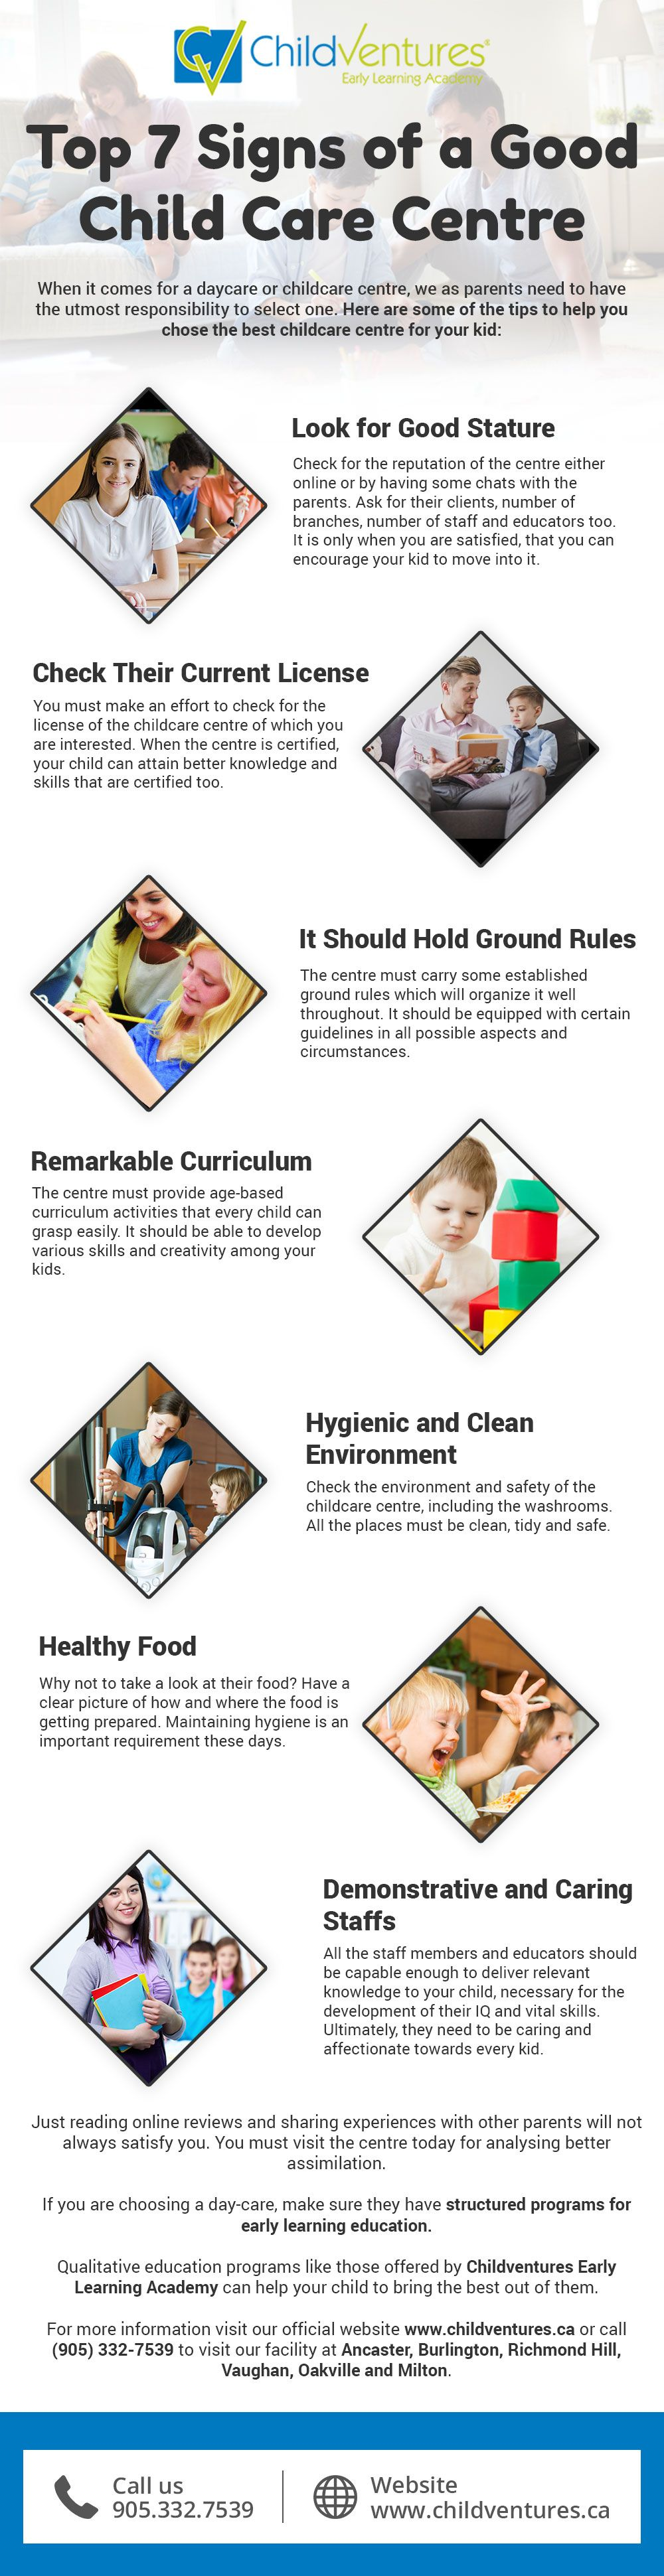 Choosing the right daycare or early learning academy is